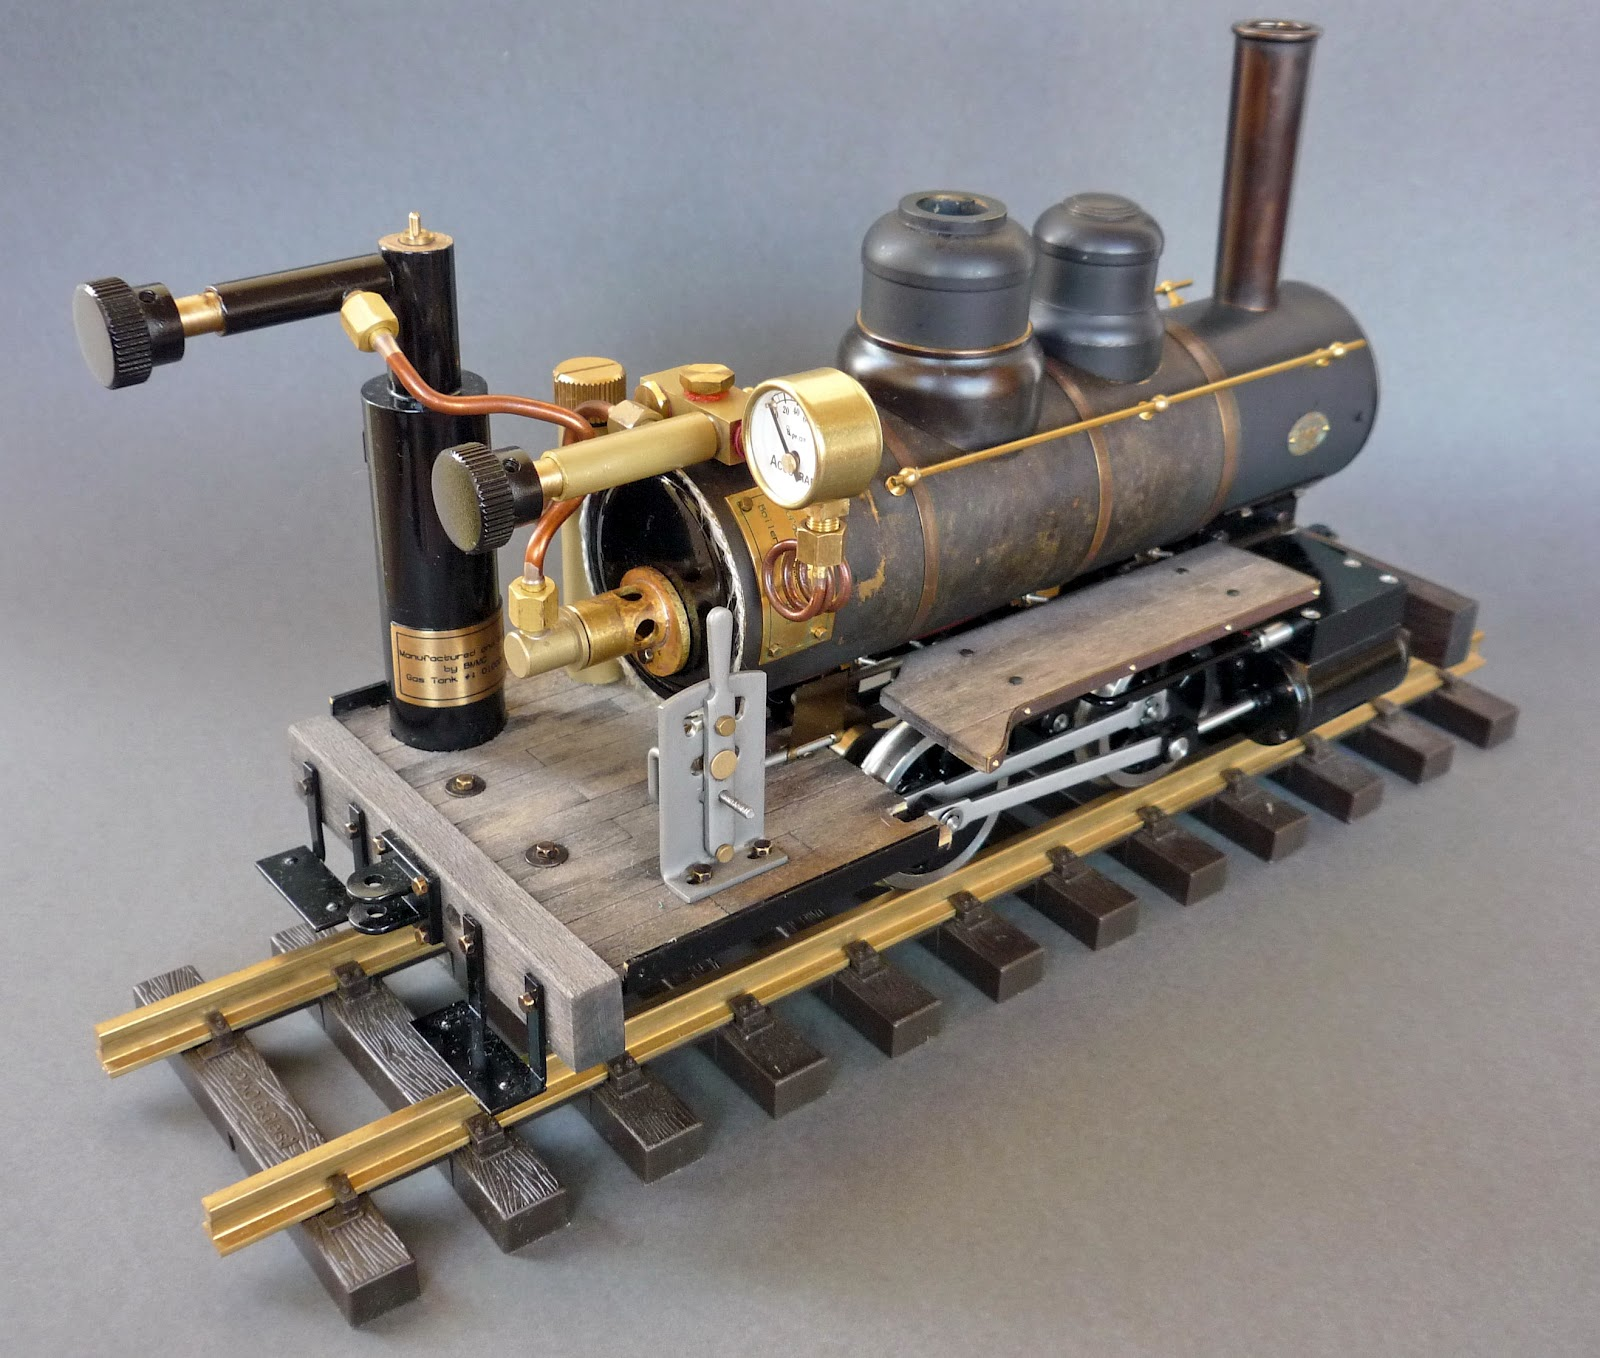 Thomas Workbench Accucraft Ruby Live Steam Locomotive